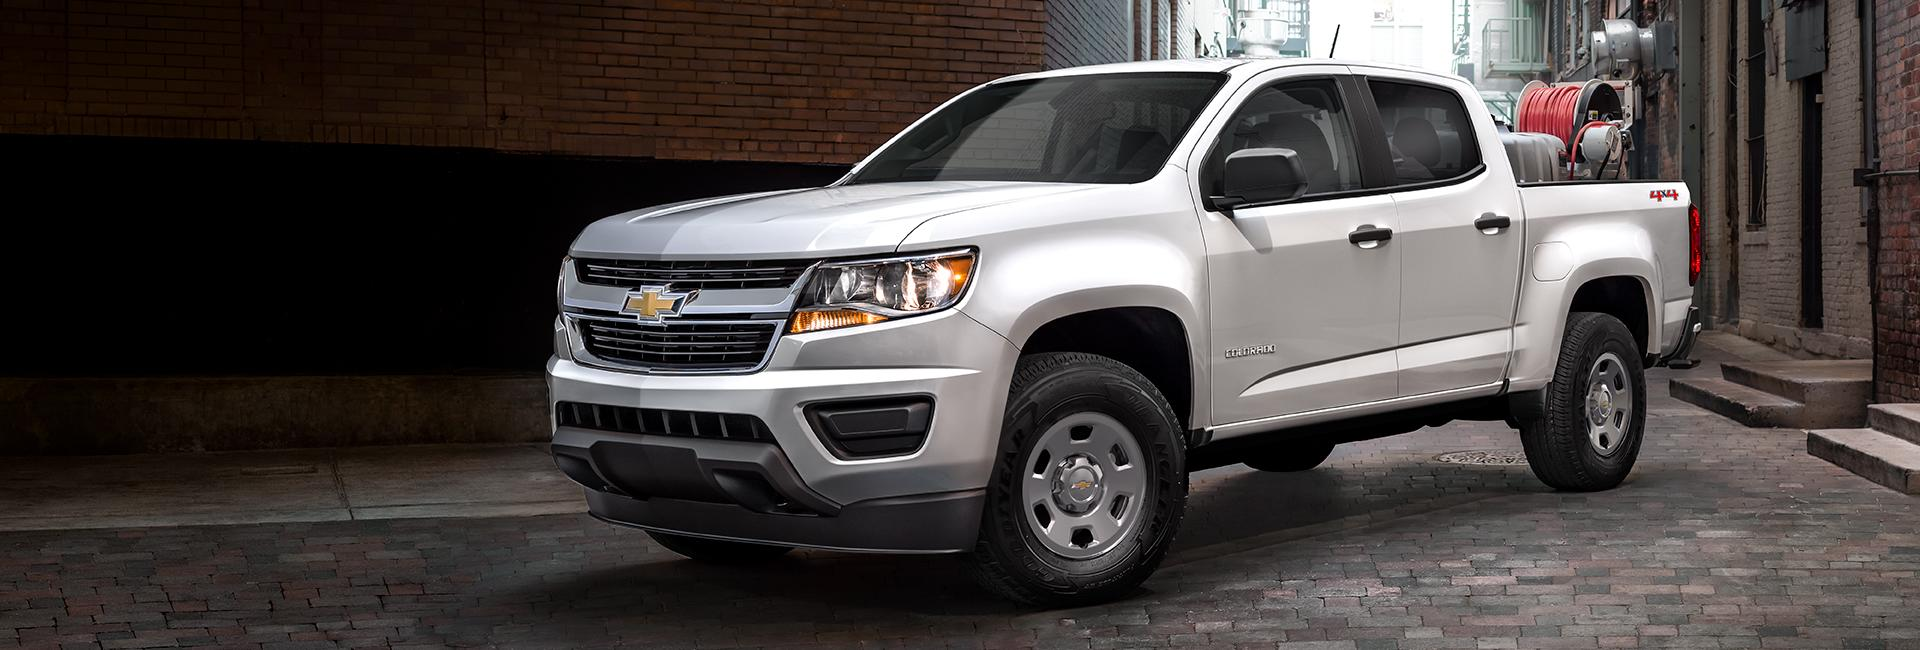 Exterior image of the 2020 Chevy Colorado at Spitzer Chevy North Canton